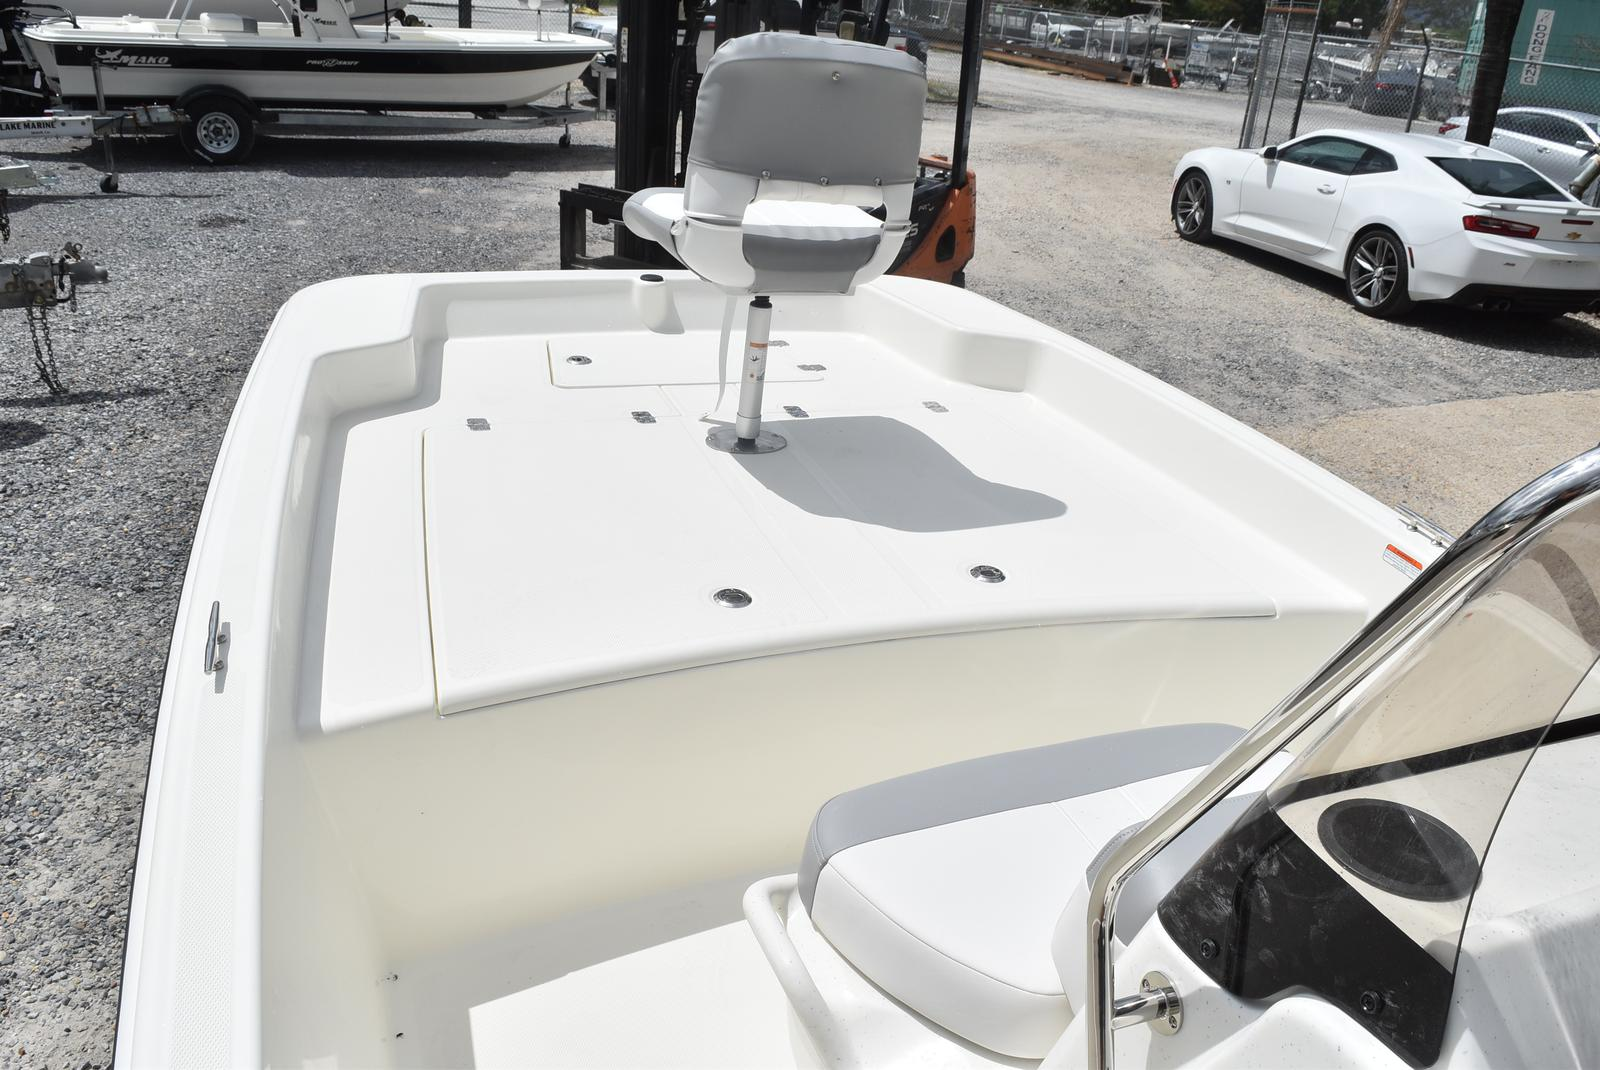 2020 Mako boat for sale, model of the boat is Pro Skiff 17, 75 ELPT & Image # 401 of 702